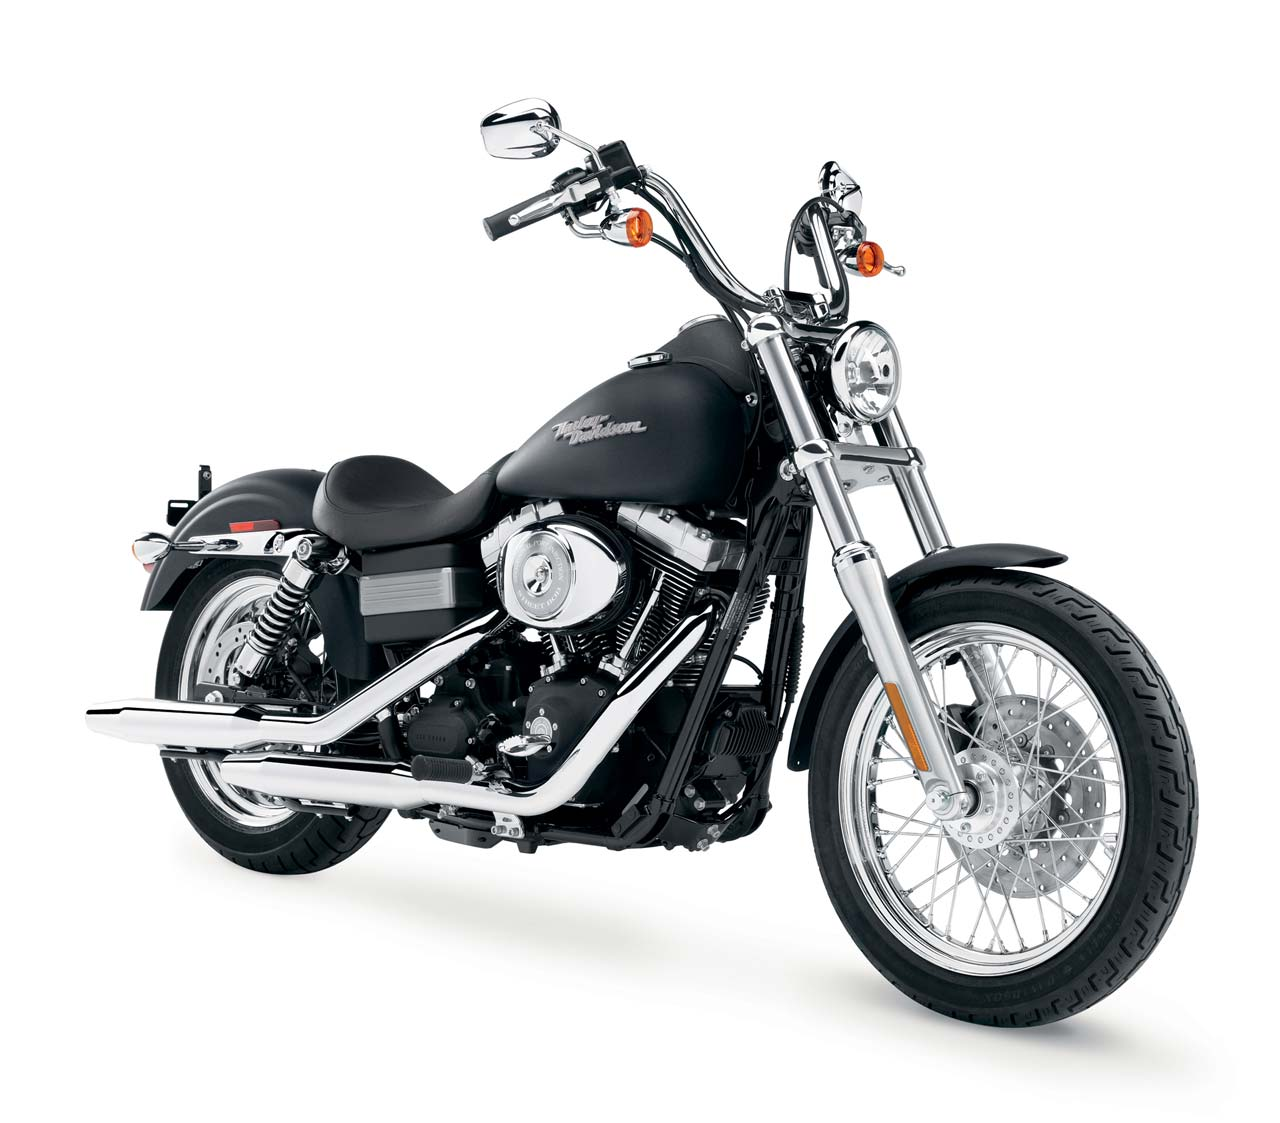 harley davidson street bob specs 2005 2006 autoevolution. Black Bedroom Furniture Sets. Home Design Ideas